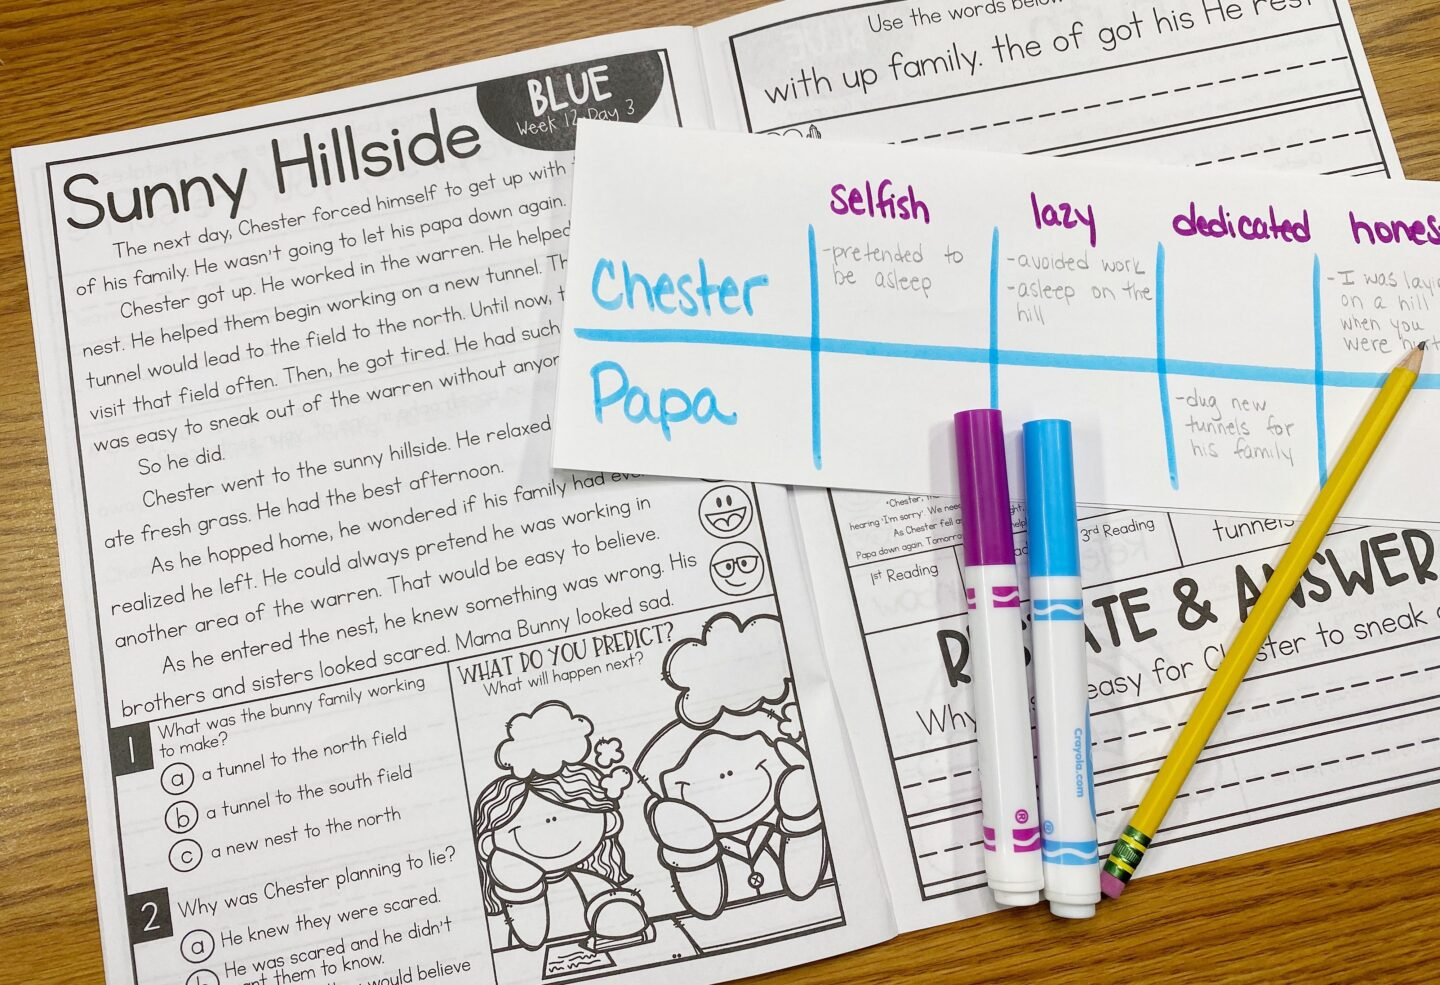 Image of Primary Gal's Resource Room Reading Series with a Character Trait Search, a Pencil, and Two Markers used for one of the 5 quick activities to do before reading